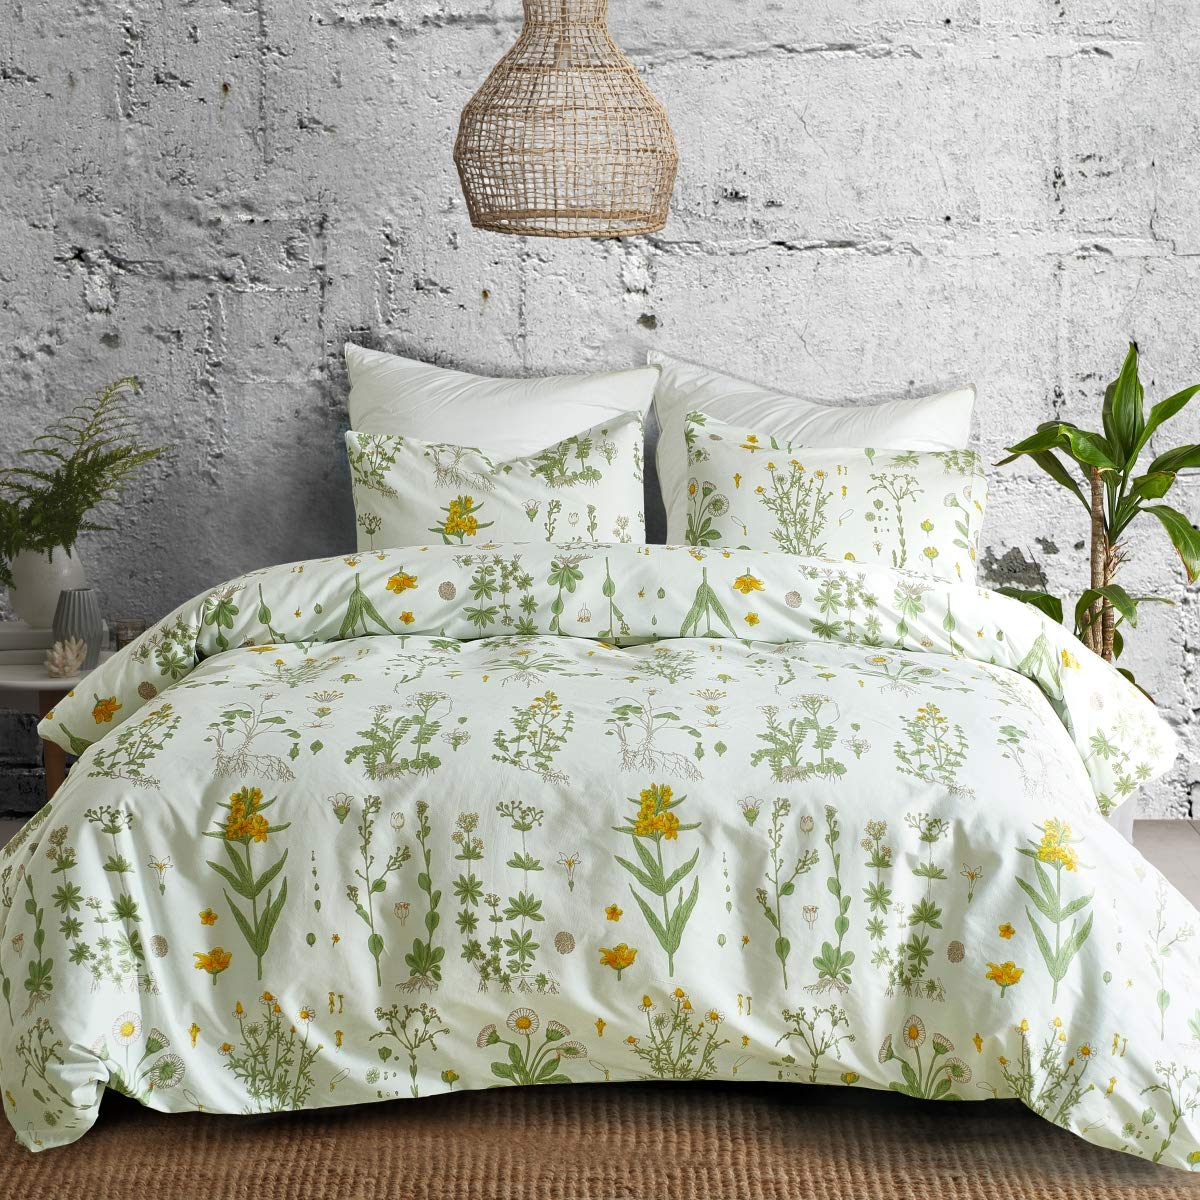 3 PCs Botanical Duvet Cover Set, Modern Flowers Printed Boho Comforter Cover Bedding Sets with Zipper Ties by Smoofy (Image #2)